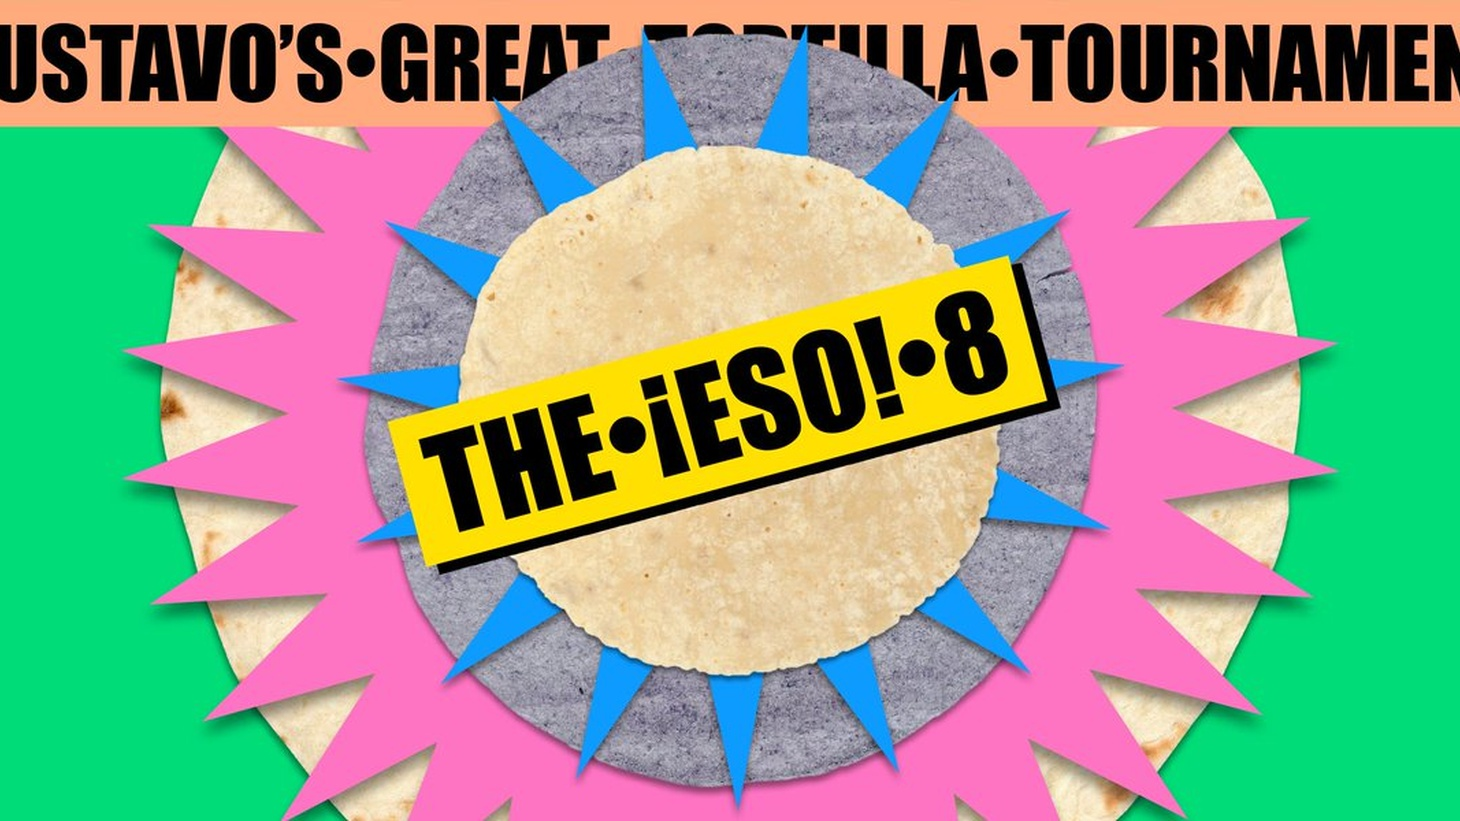 Gustavo's Great Tortilla Tournament: the ¡Eso 8!